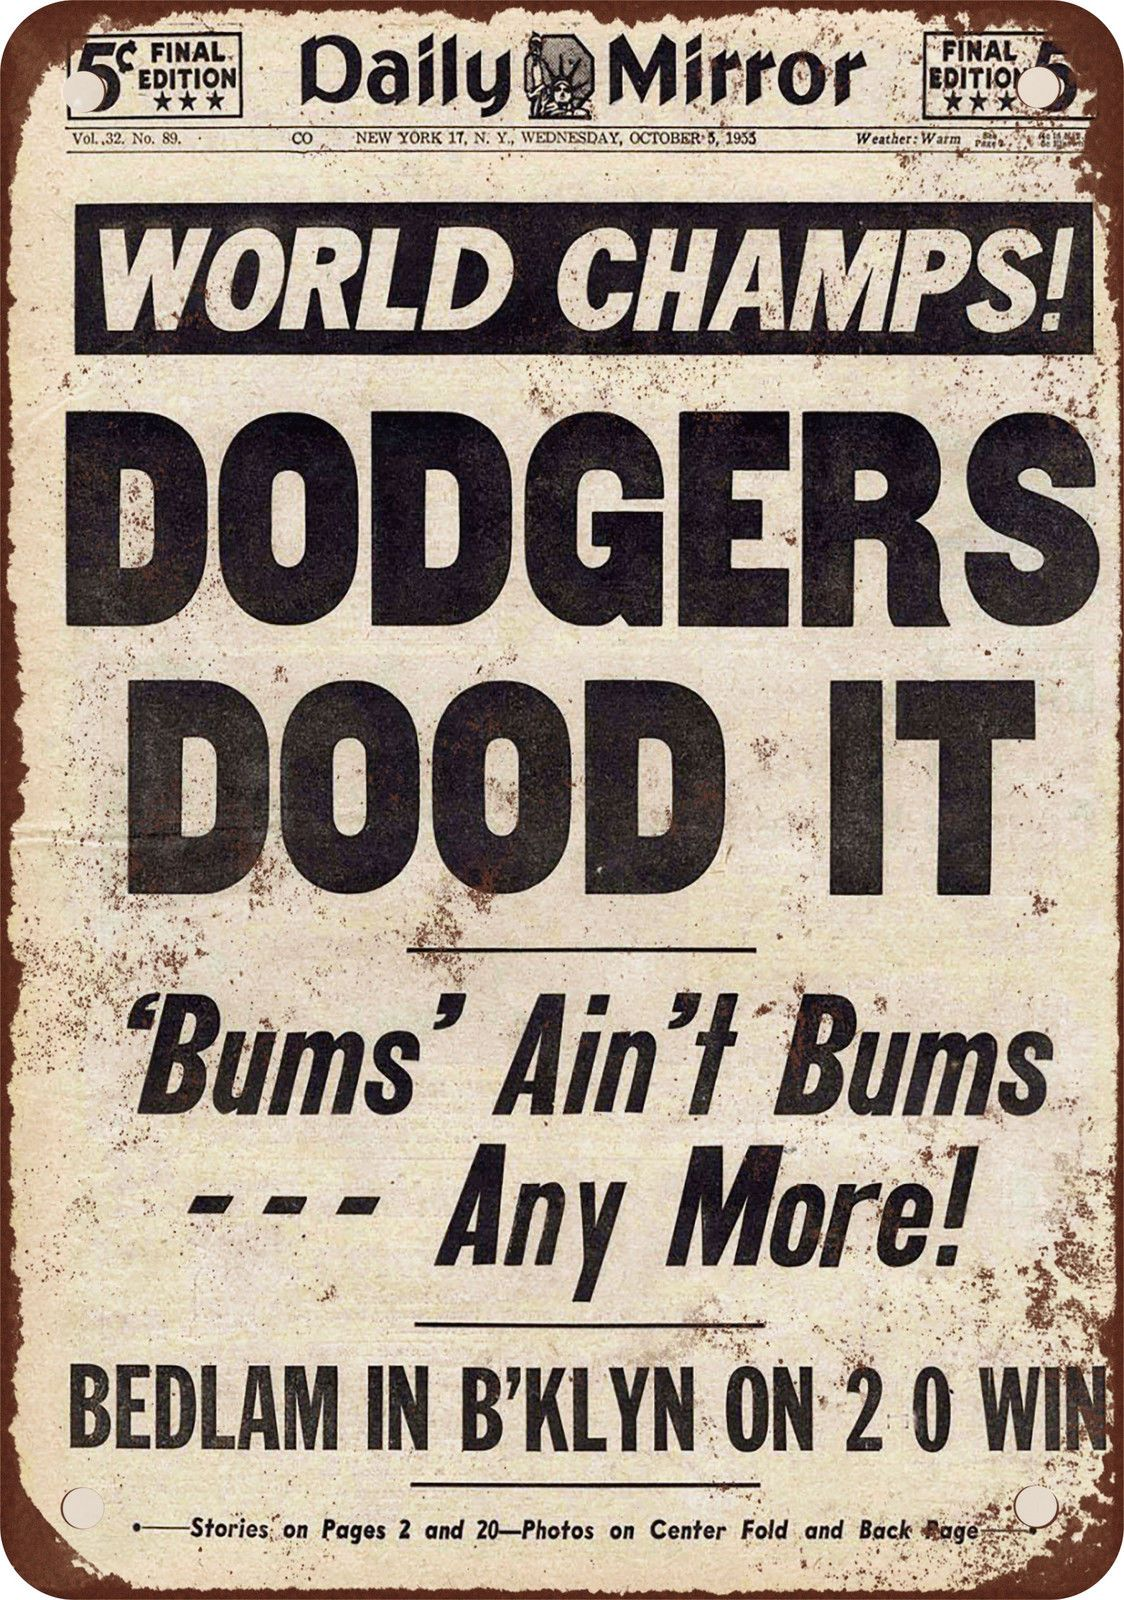 Find newspaper front page repros 1955 brooklyn dodgers win world find newspaper front page repros 1955 brooklyn dodgers win world series vintage look reproduction metal sign buycottarizona Image collections